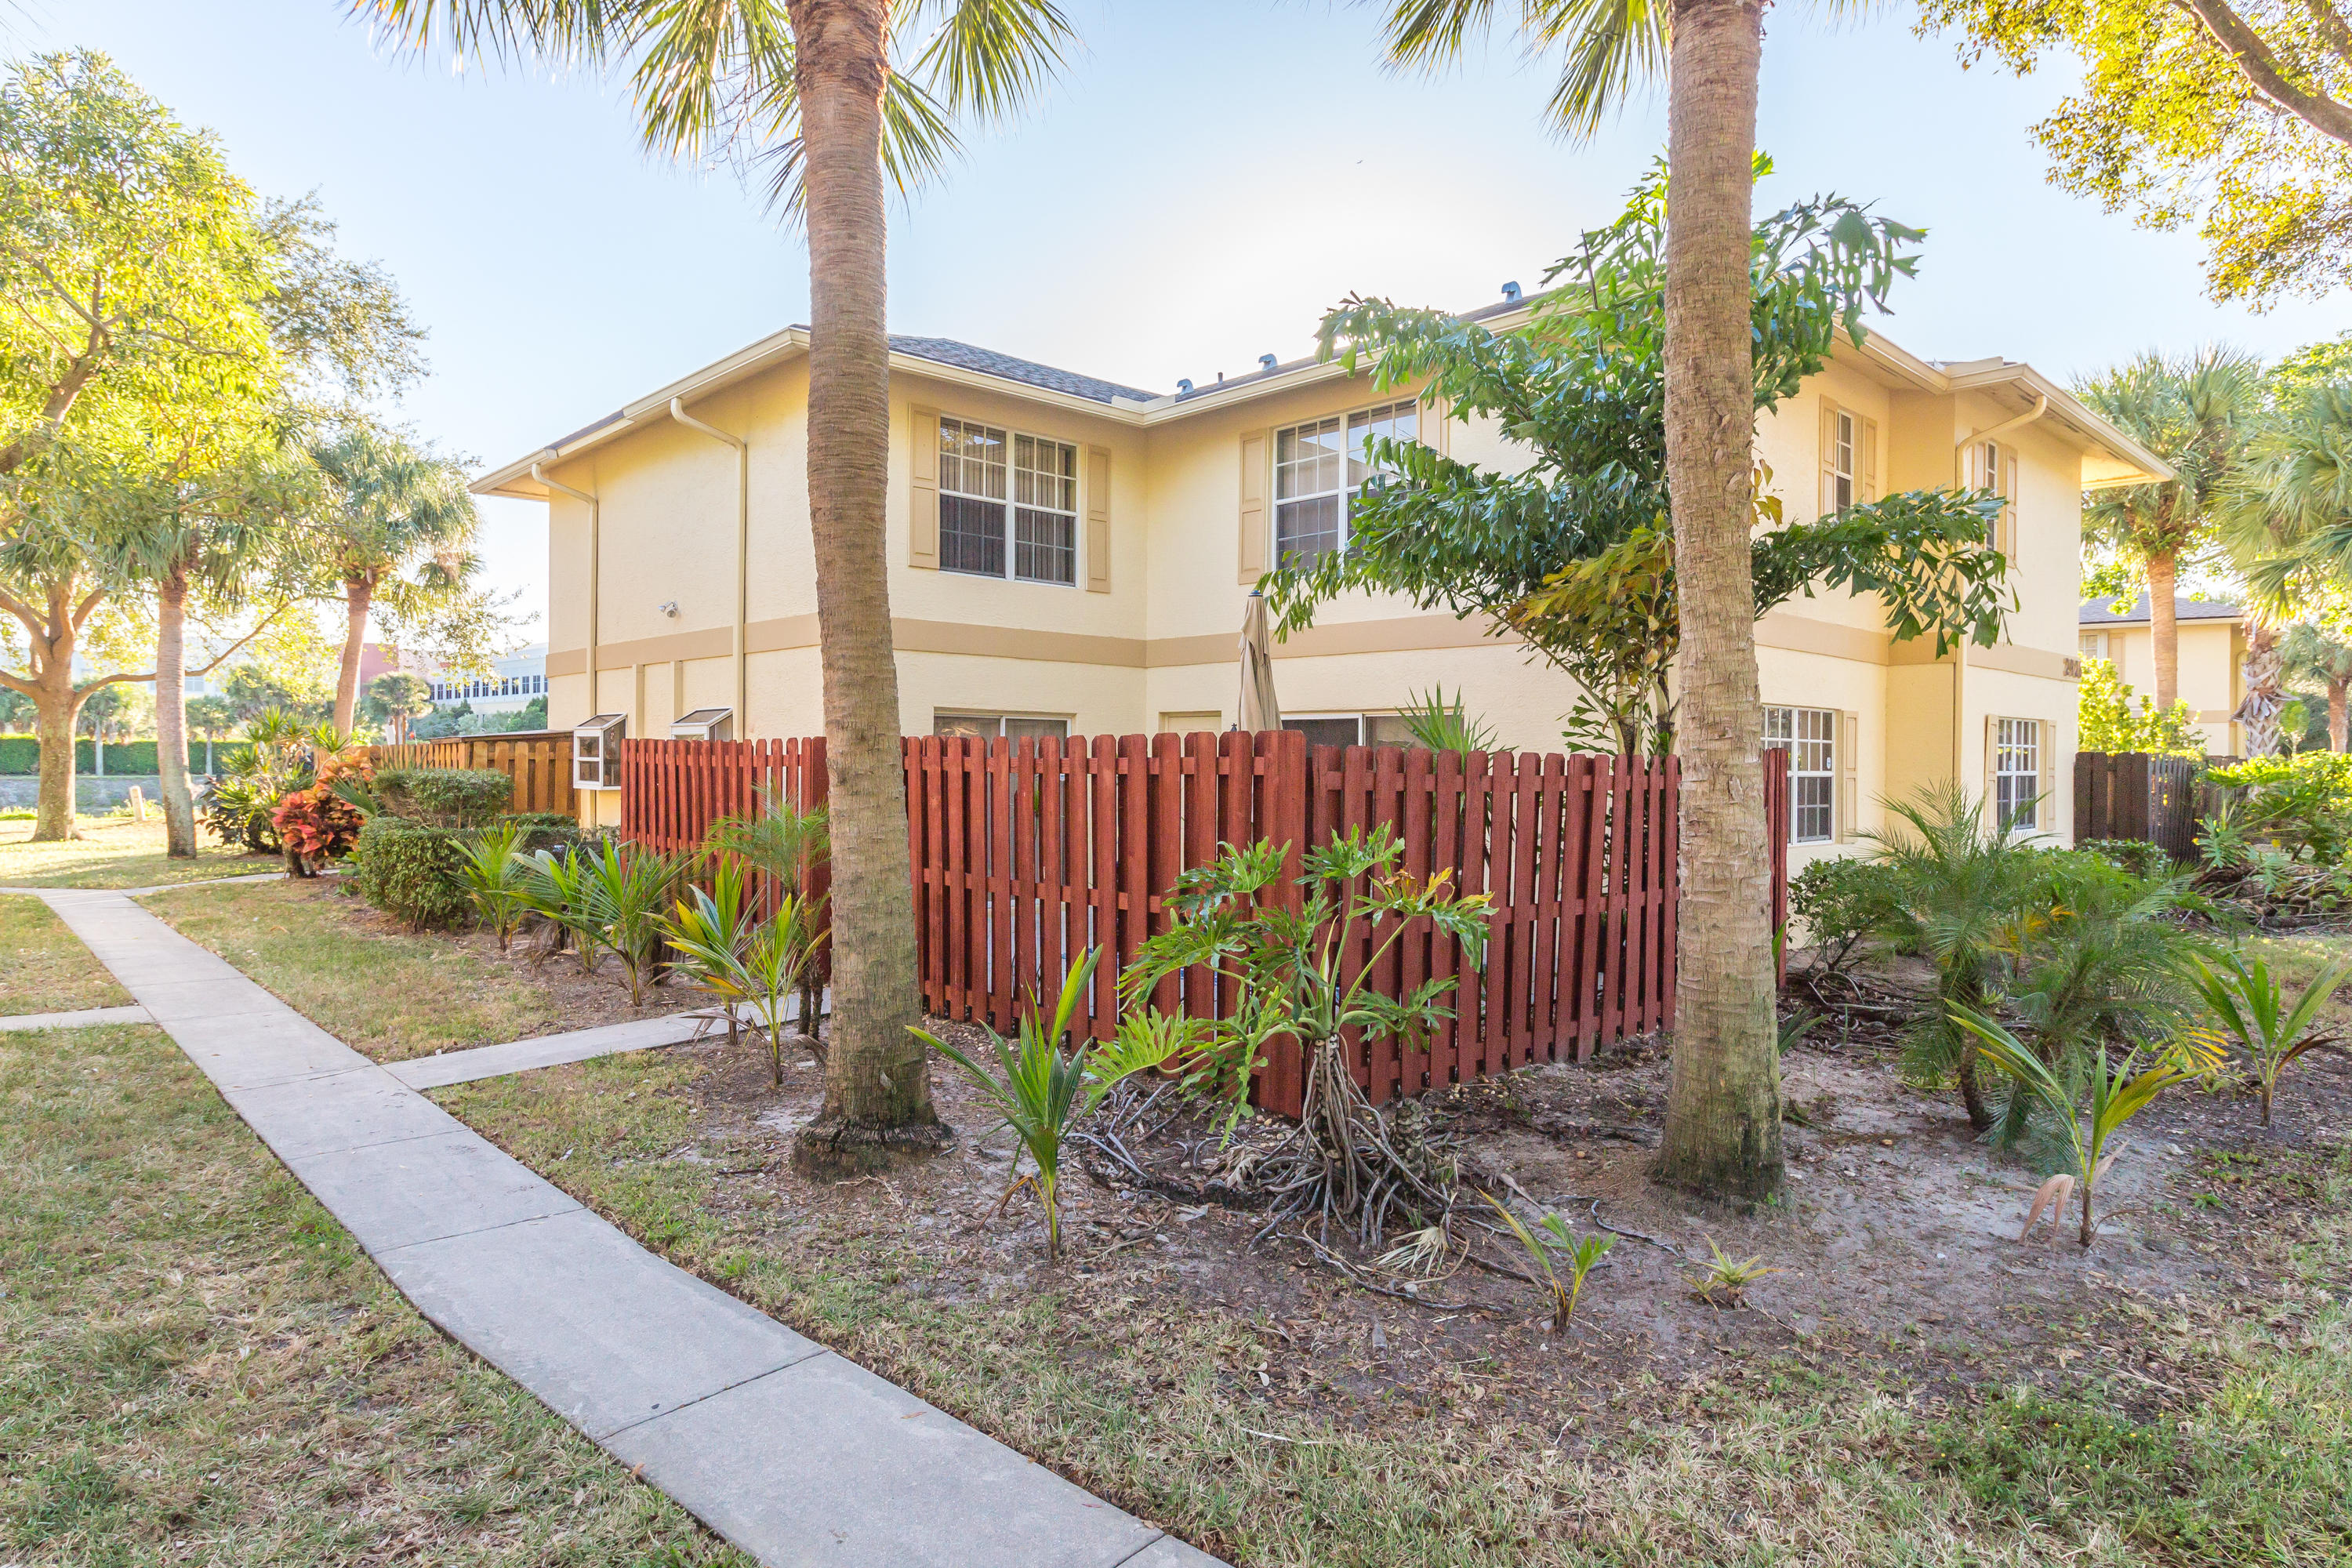 2926 SW 22nd Circle 16c Delray Beach, FL 33445 small photo 1